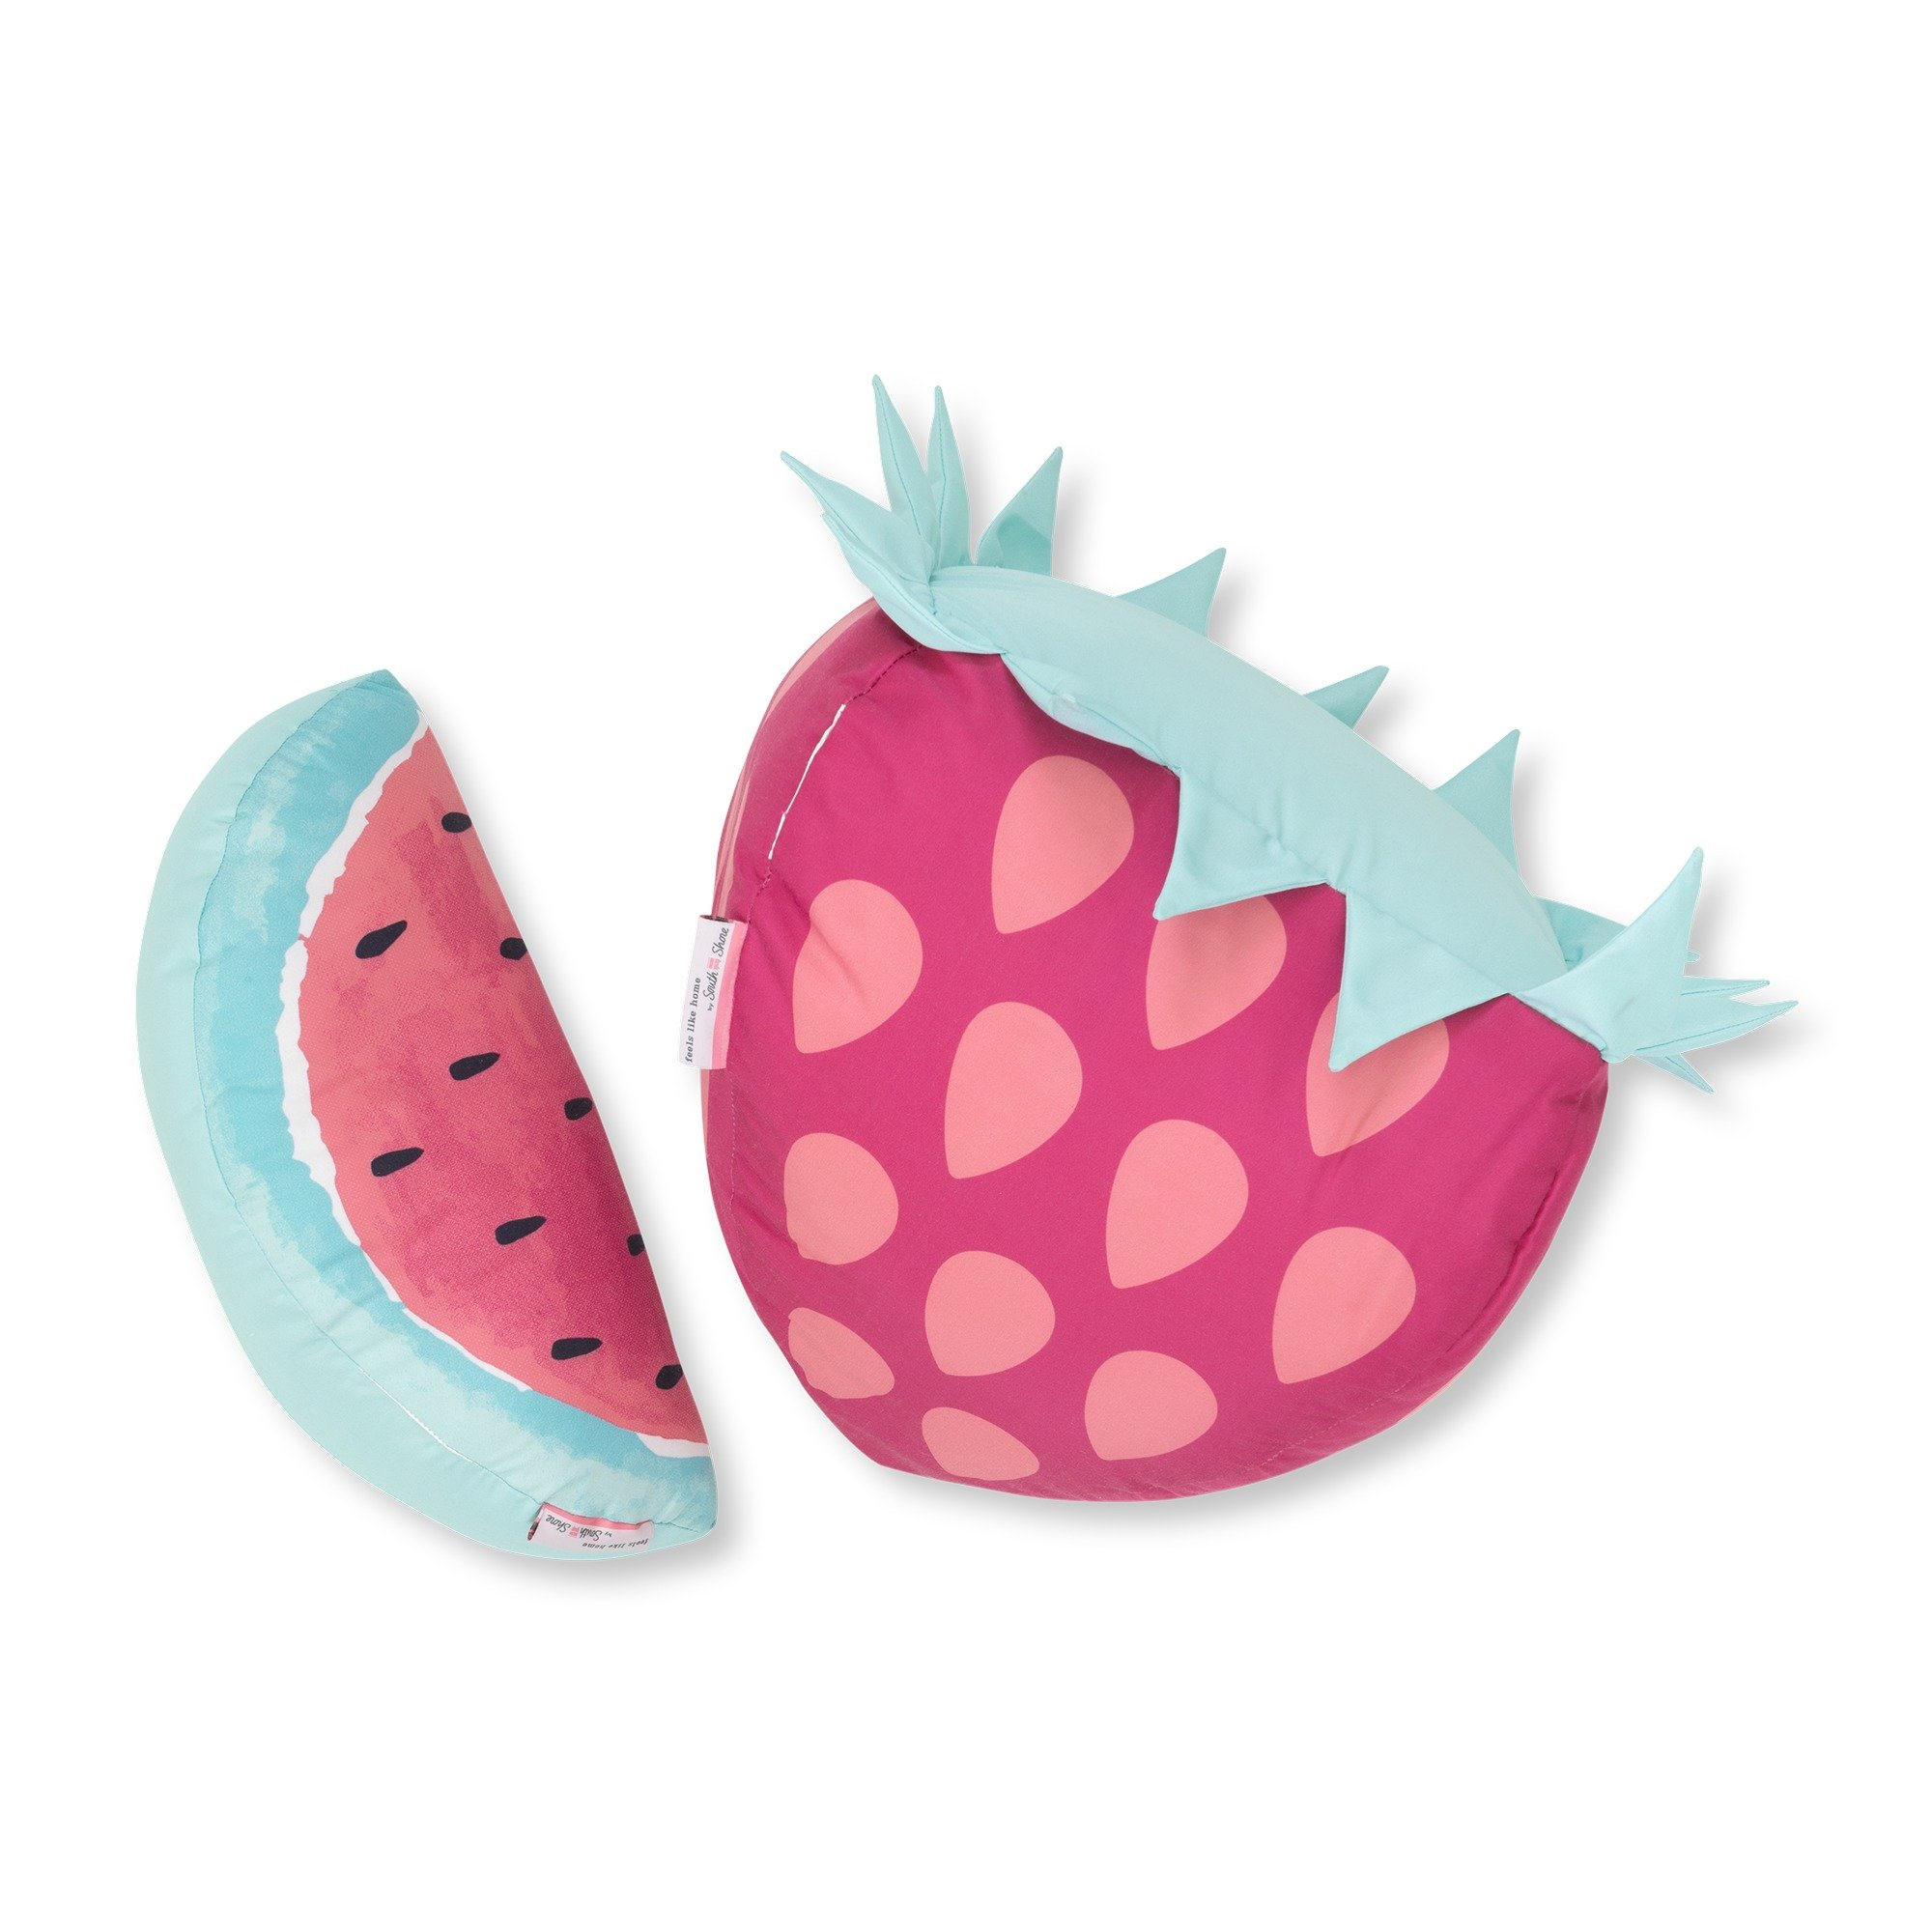 South Shore Dreamit Strawberry and Watermelon Throw Pillows, 2-Pack, Pink/Turquoise, 2 Piece